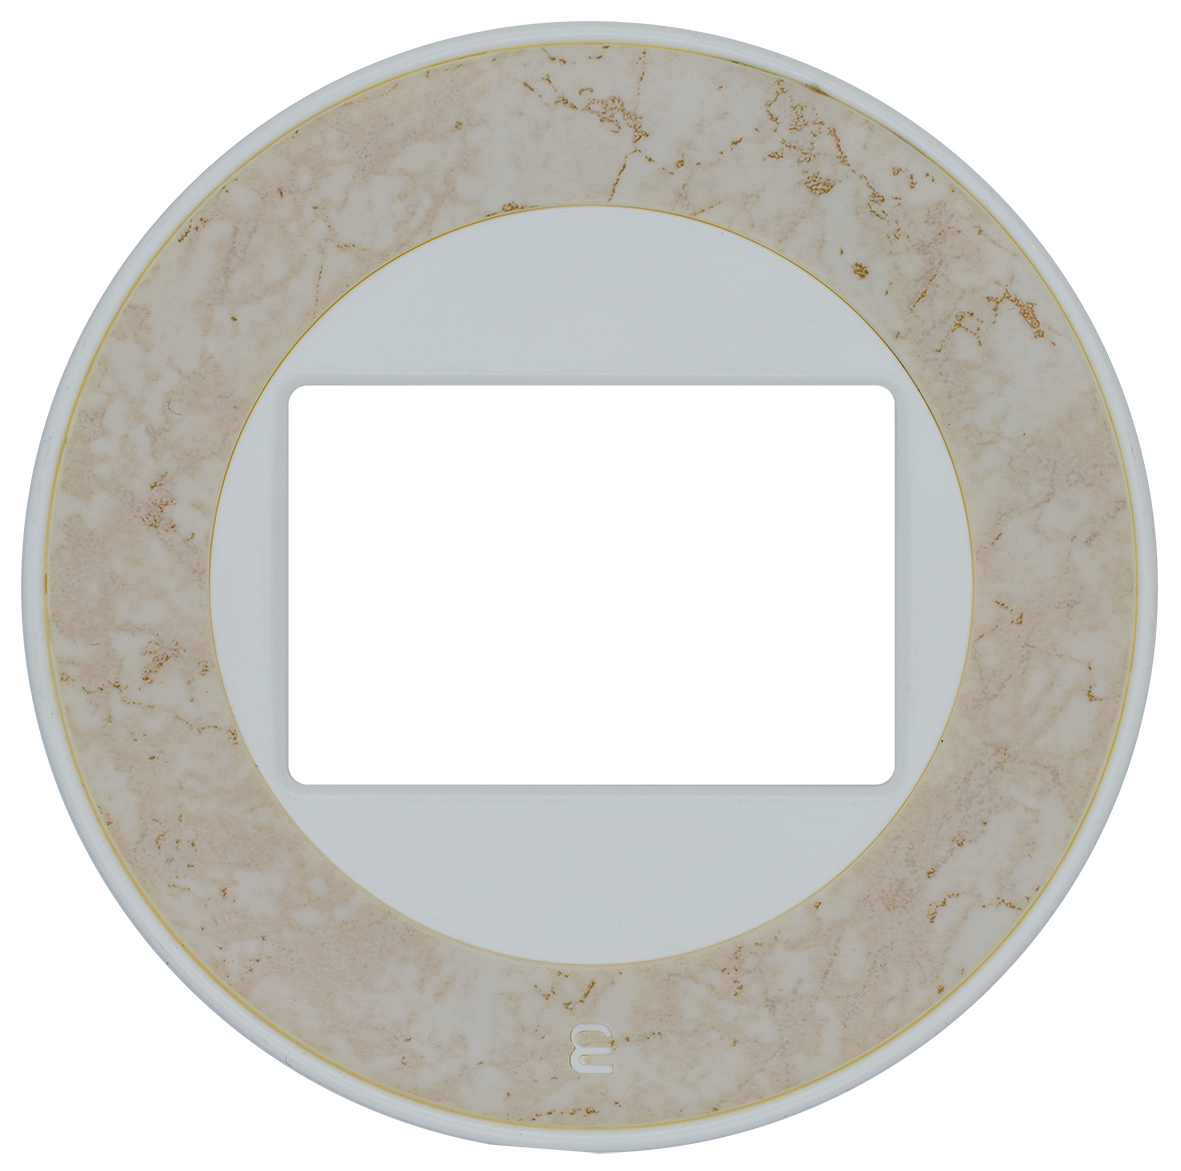 Frame: White / Center: Dark Marble